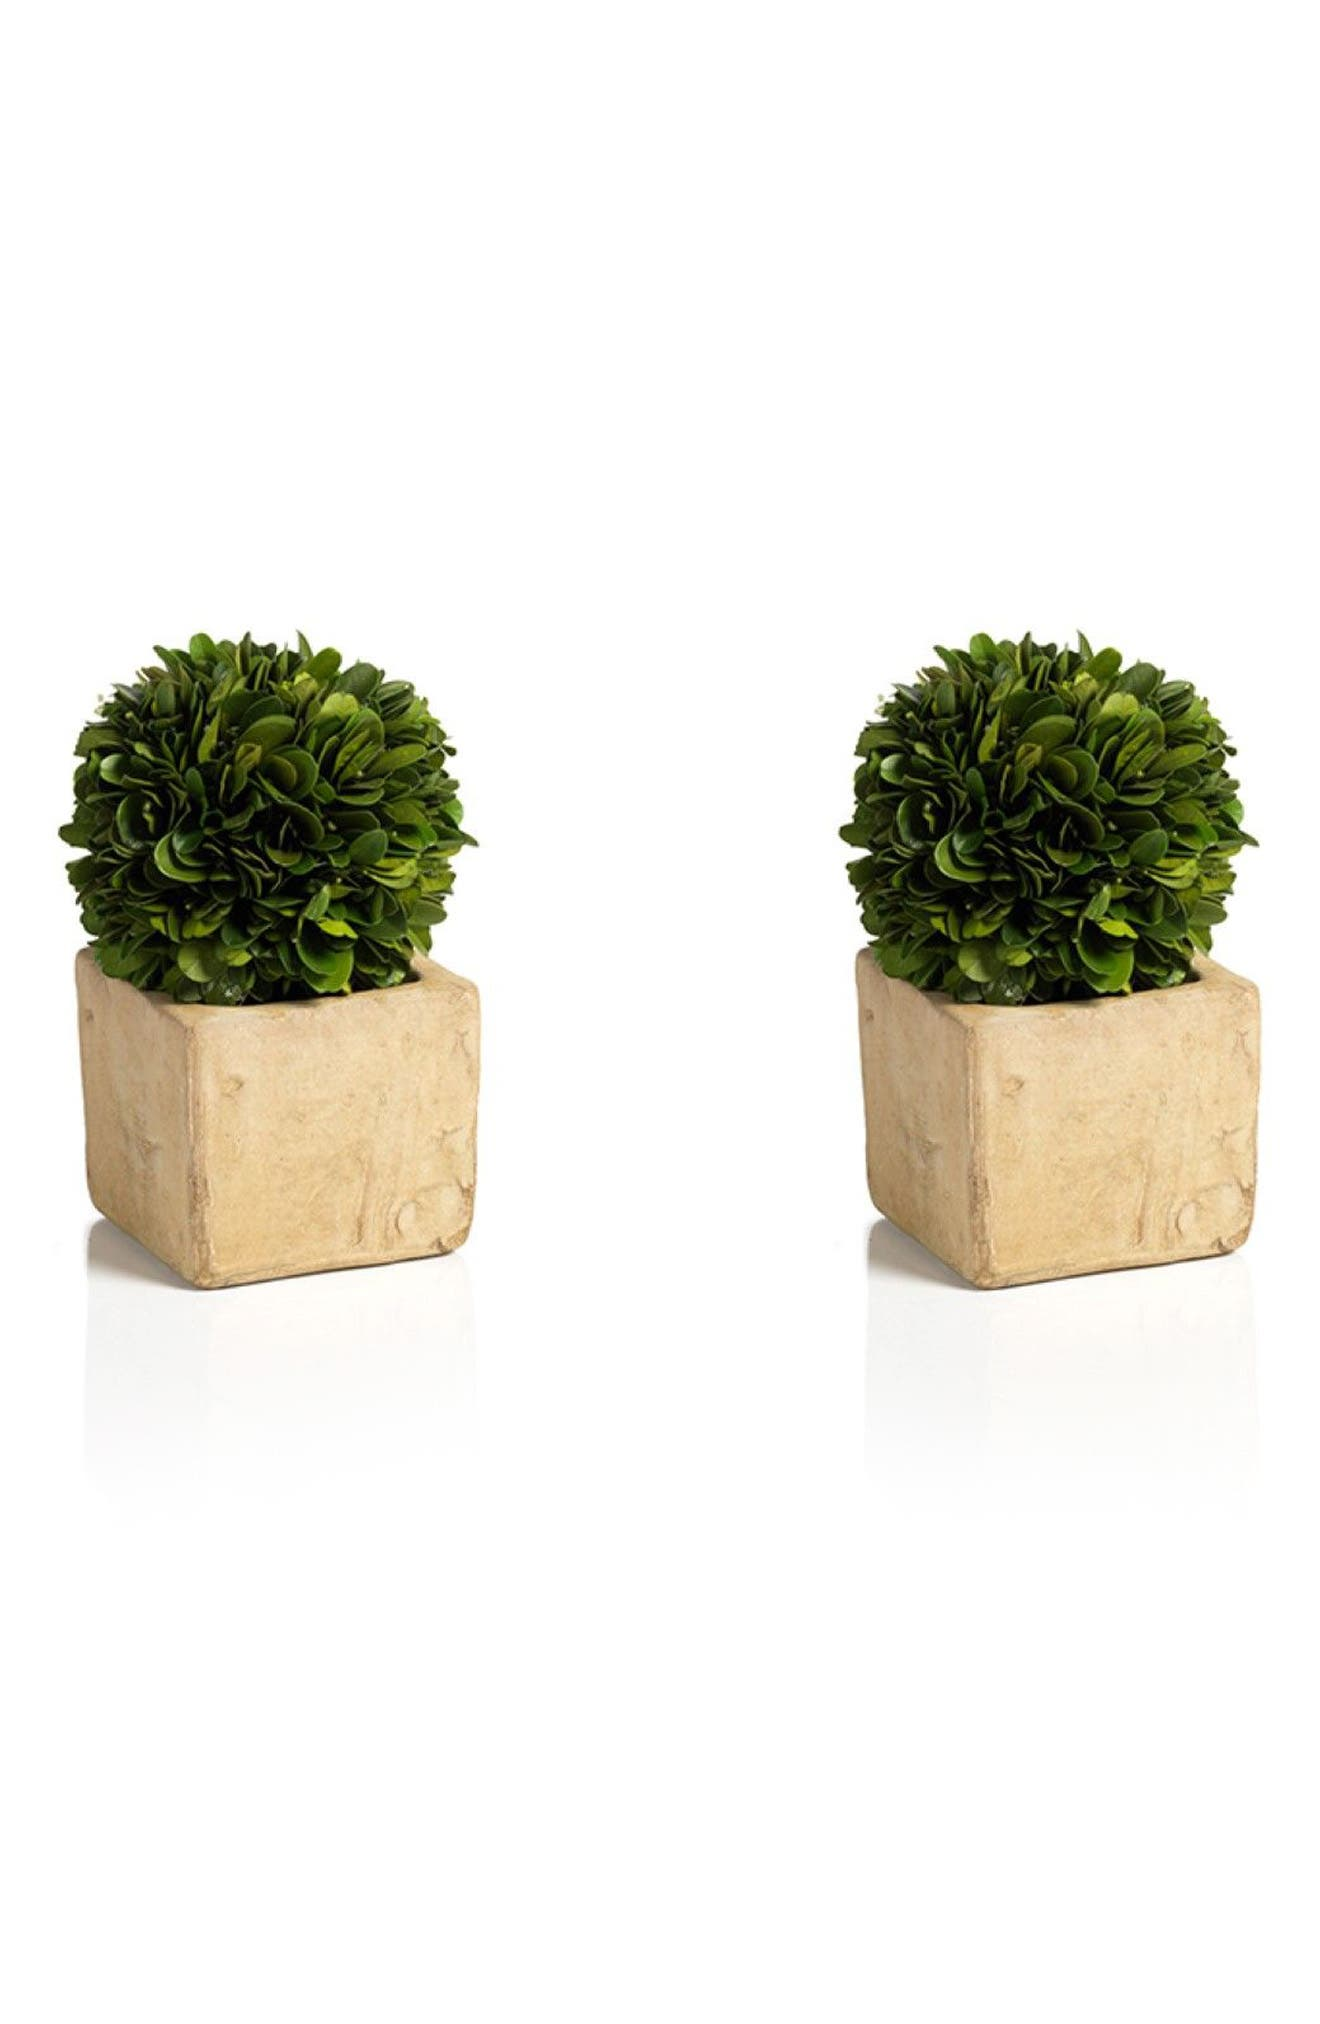 ZODAX Carina Set of 2 Topiary Decorations, Main, color, 300